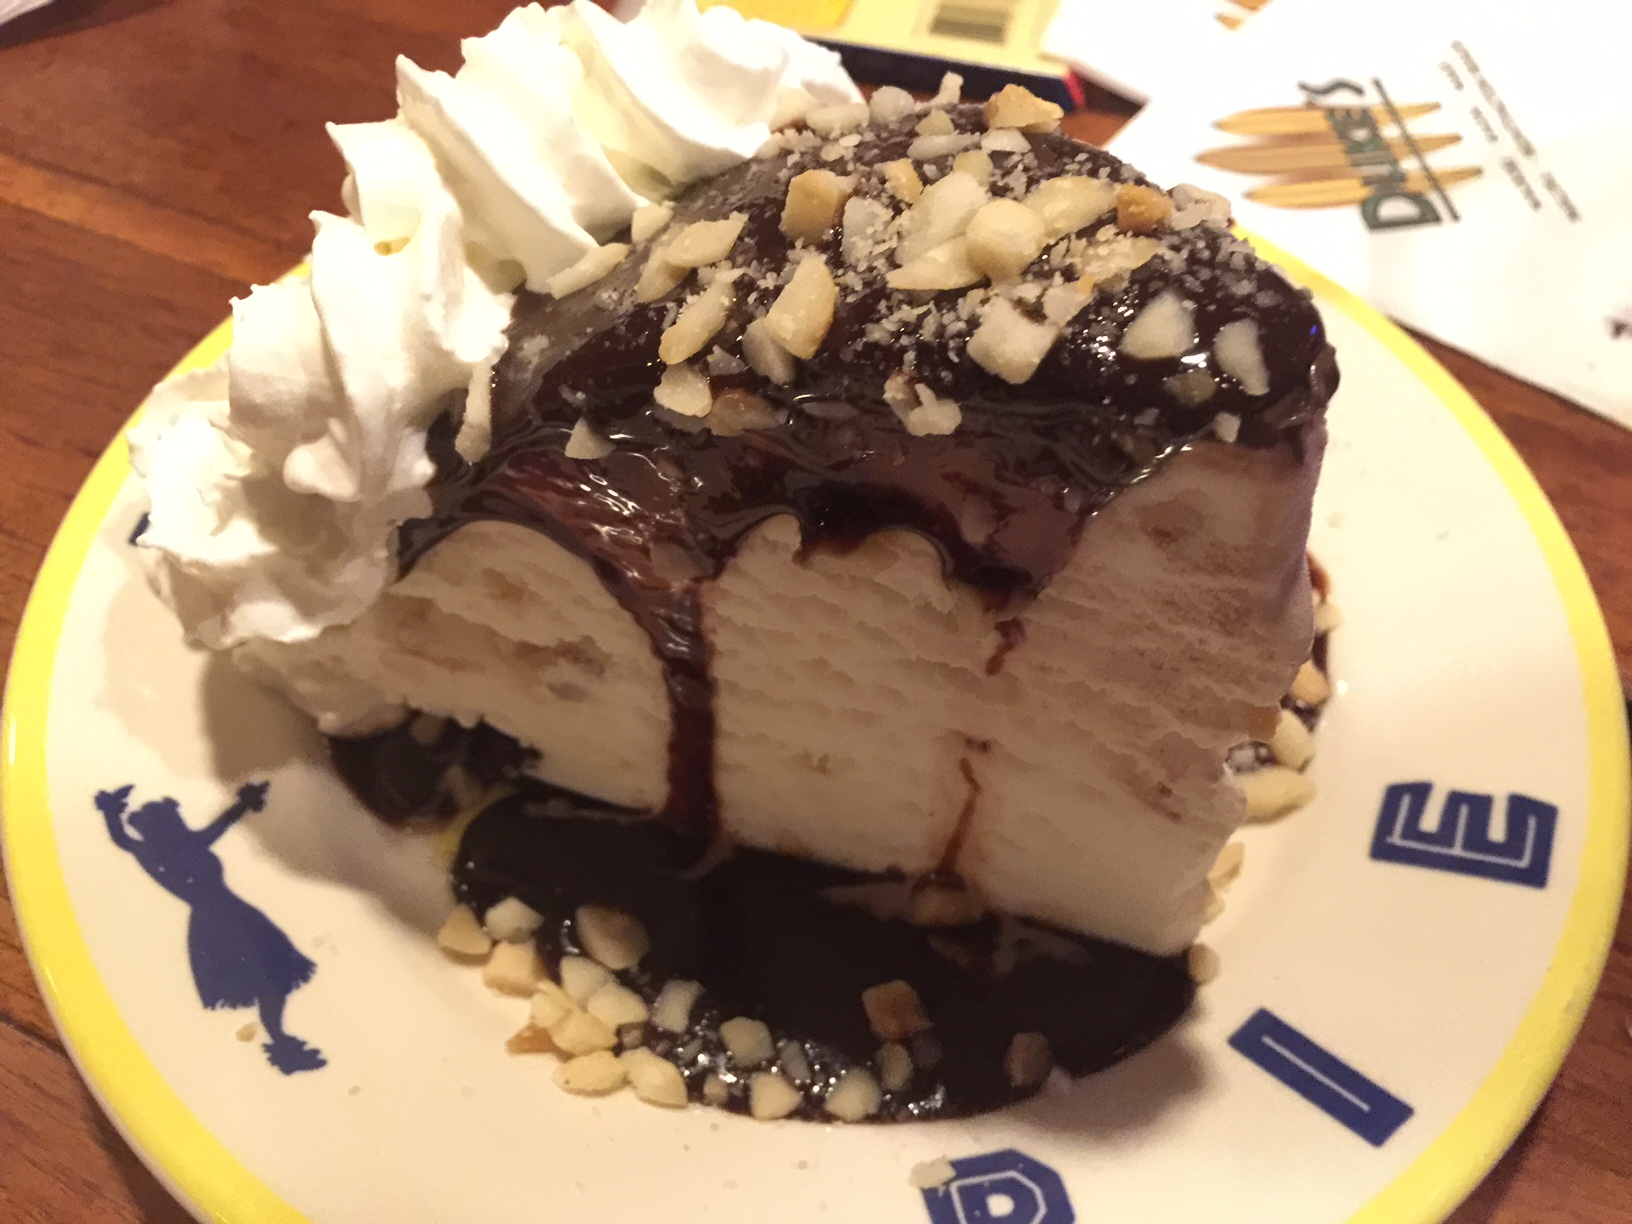 Duke's Waikiki: The Hula Pie is a must-get dessert. It's essentially a slice of ice cream topped with chocolate sauce, whipped cream and macadamia nuts.